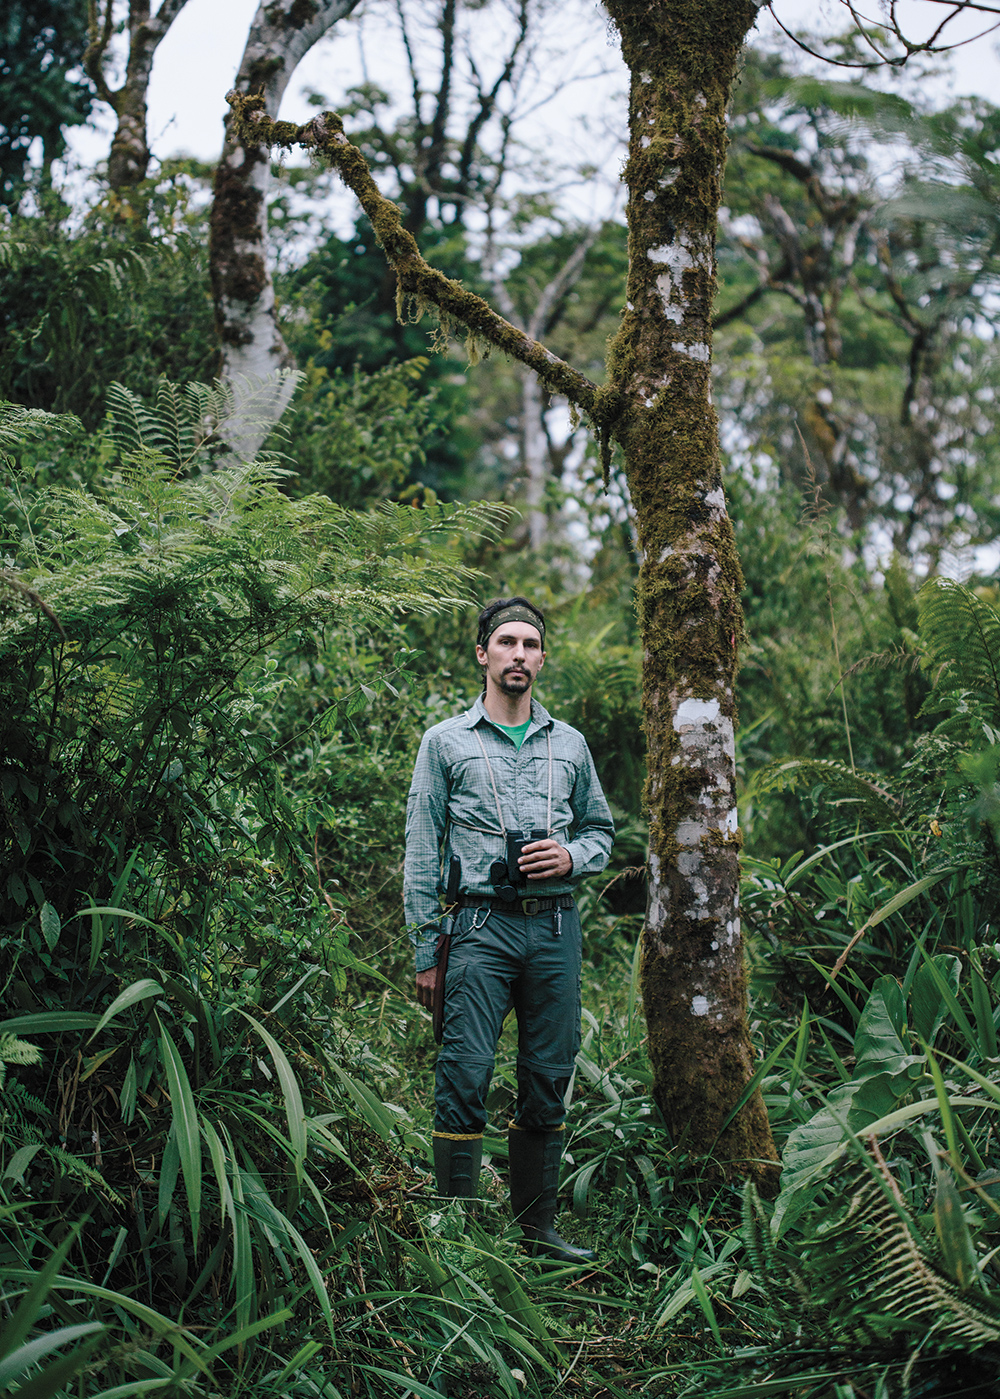 Years of bird work in the Amazon taught Luke Powell (above) to carry a machete in tropical forests and to put his binoculars on a rope harness, which reduces bounce when navigating rough terrain. Tristan Spinski